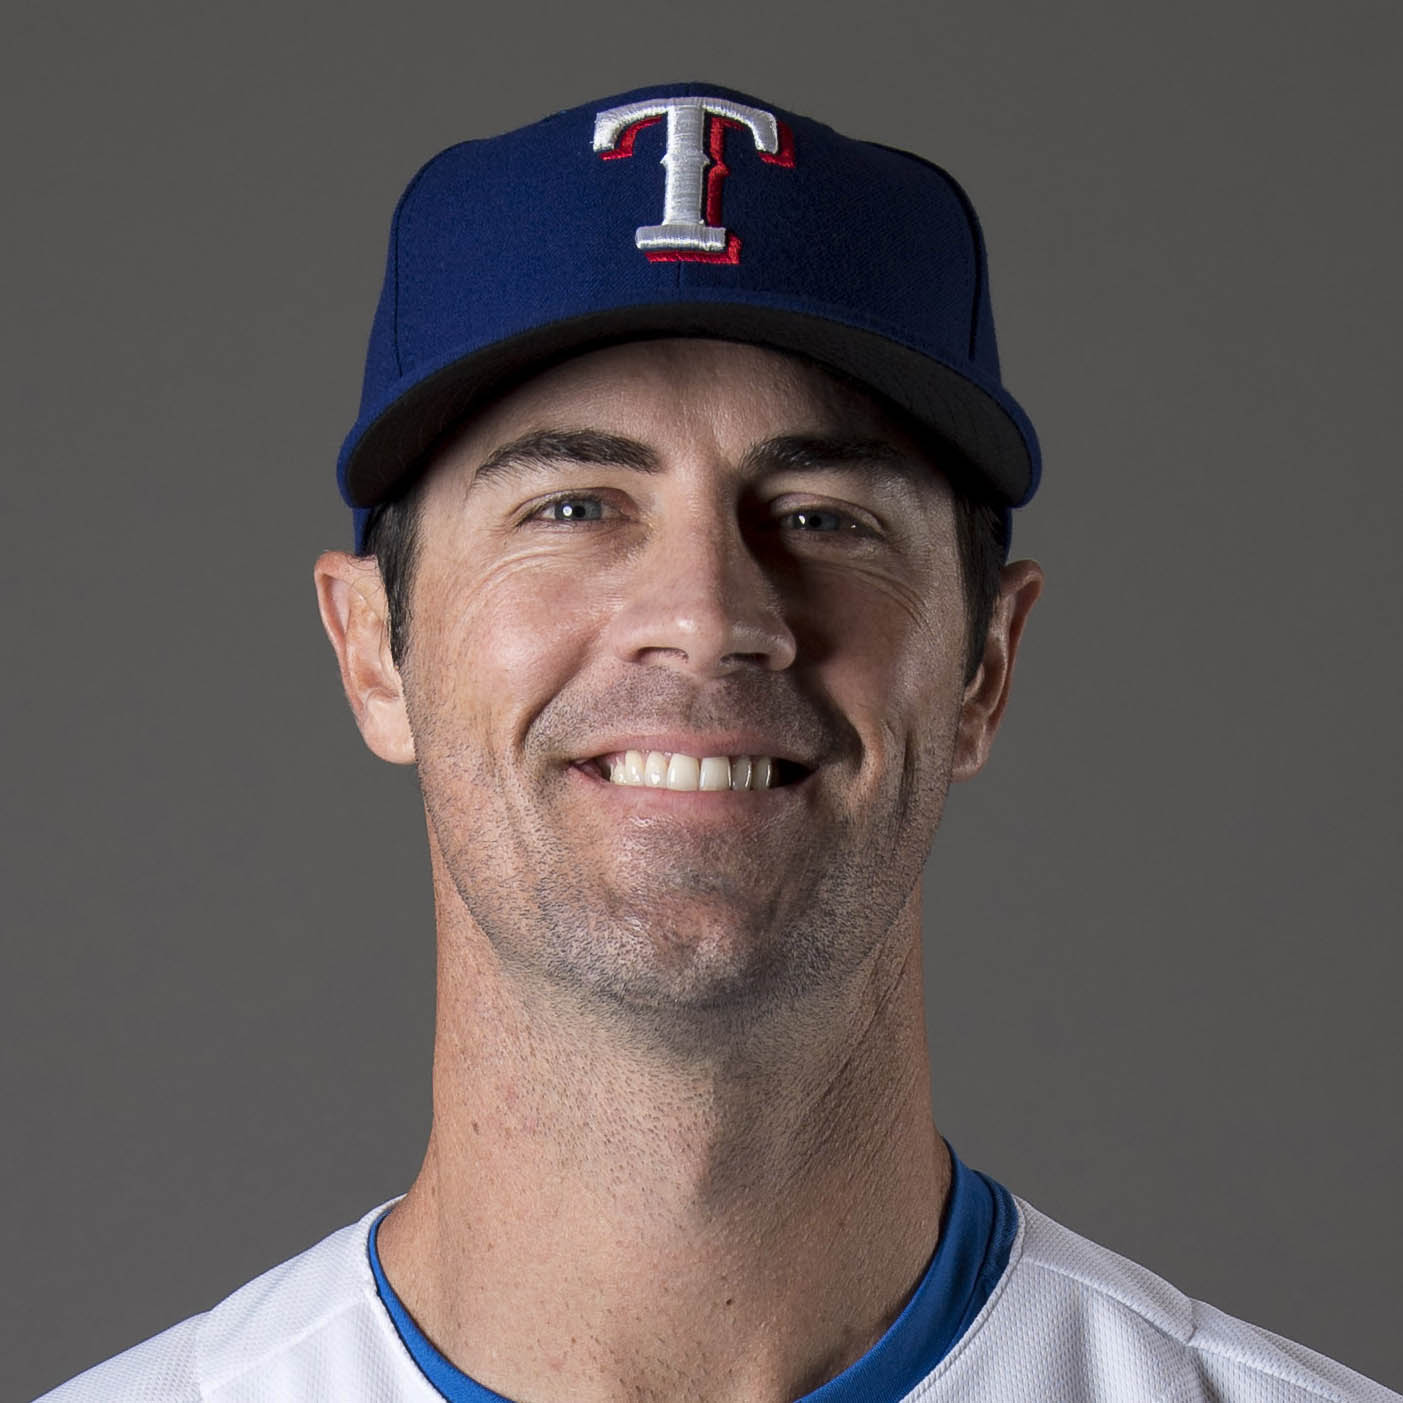 Cole Hamels (L) Headshot